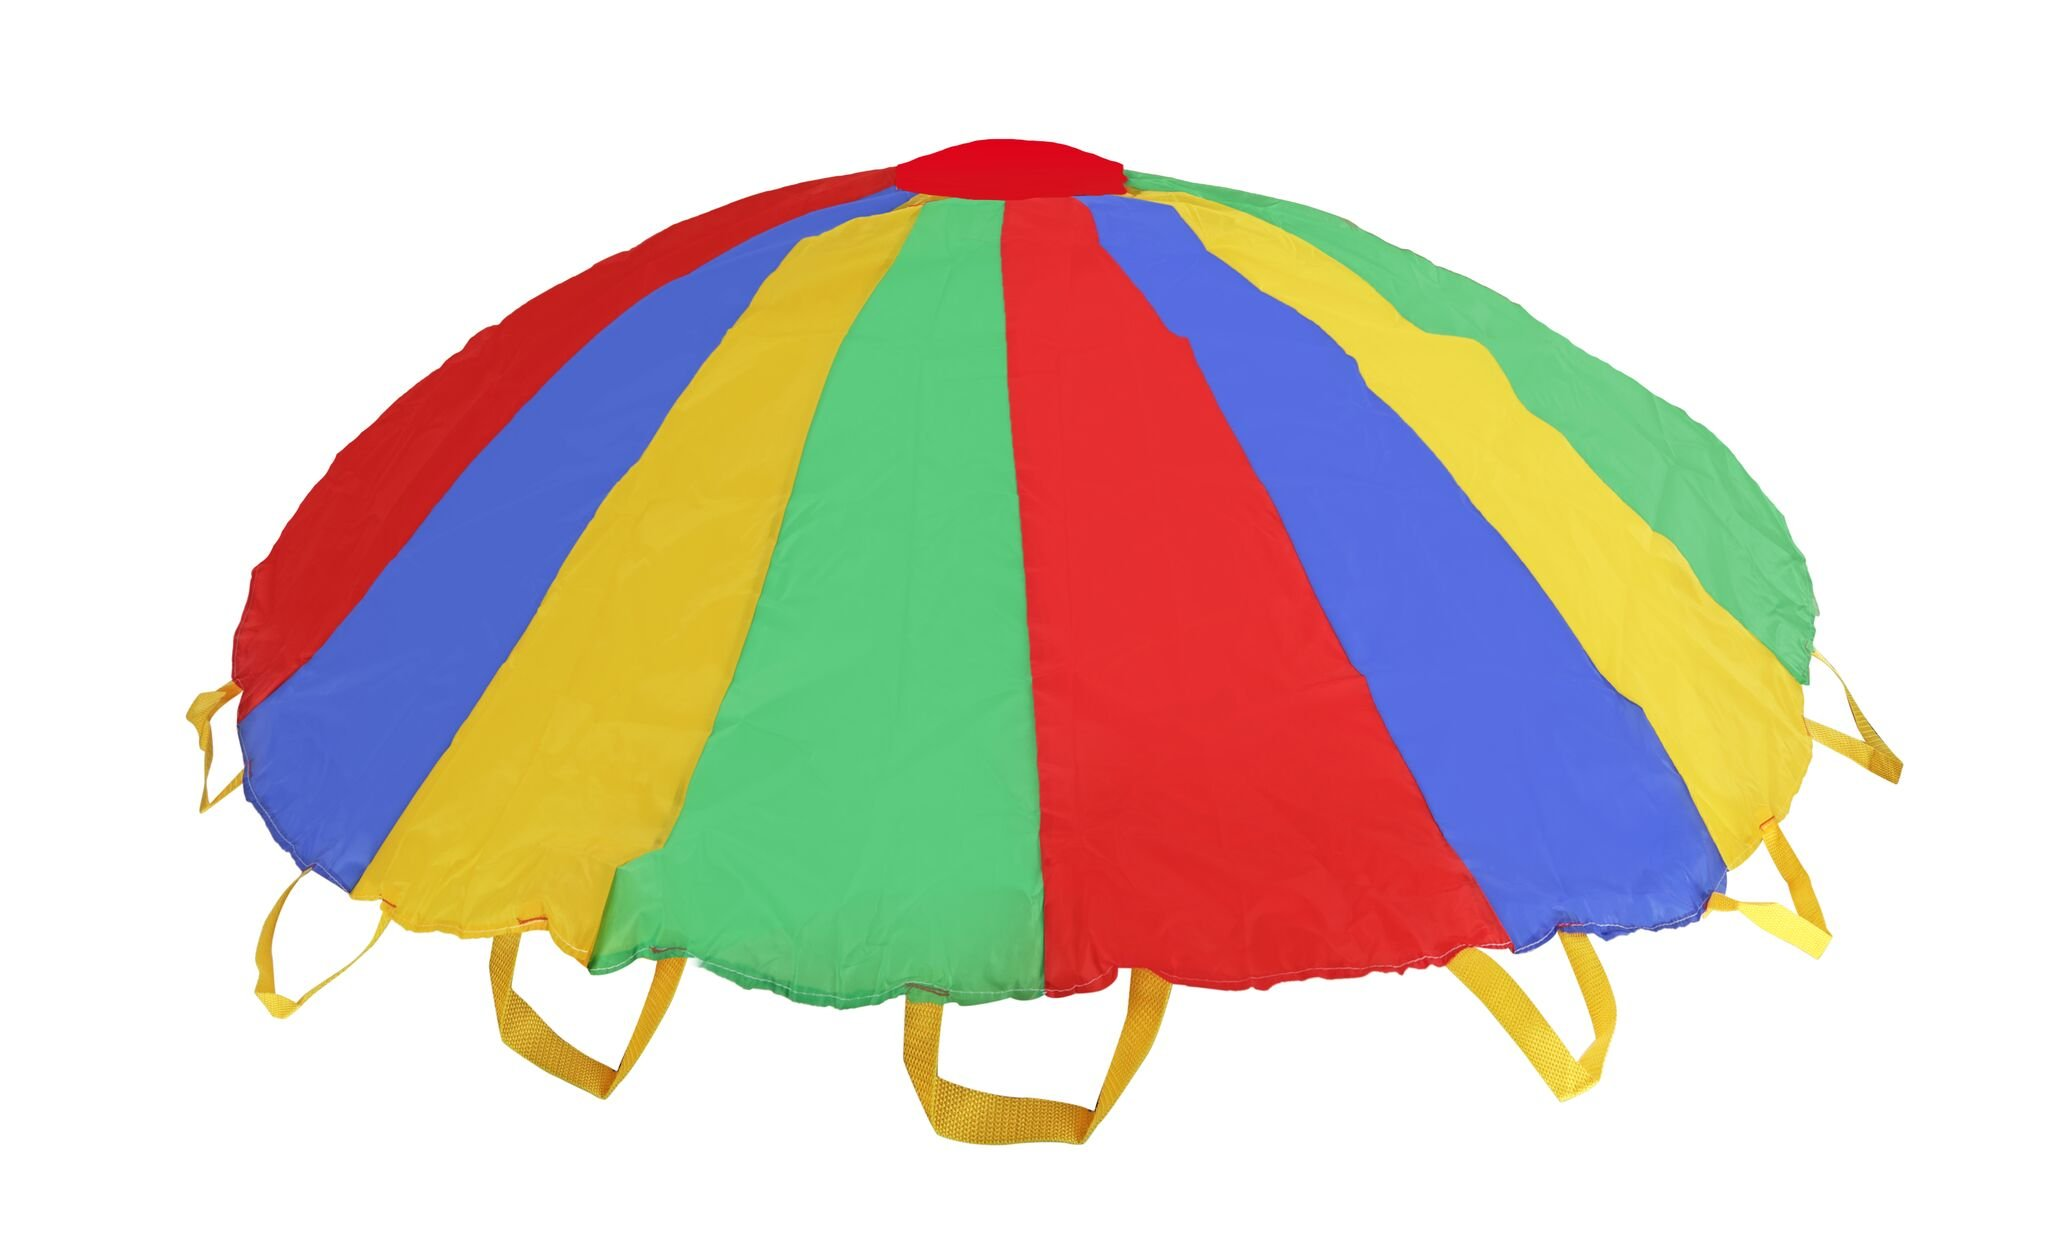 Multi-color 5 feet Parachute - Ideal Summer Sport Activity Playchute For Kids - Amazing Exerciser, Gift, Game, and more! by Toy Cubby (Image #6)